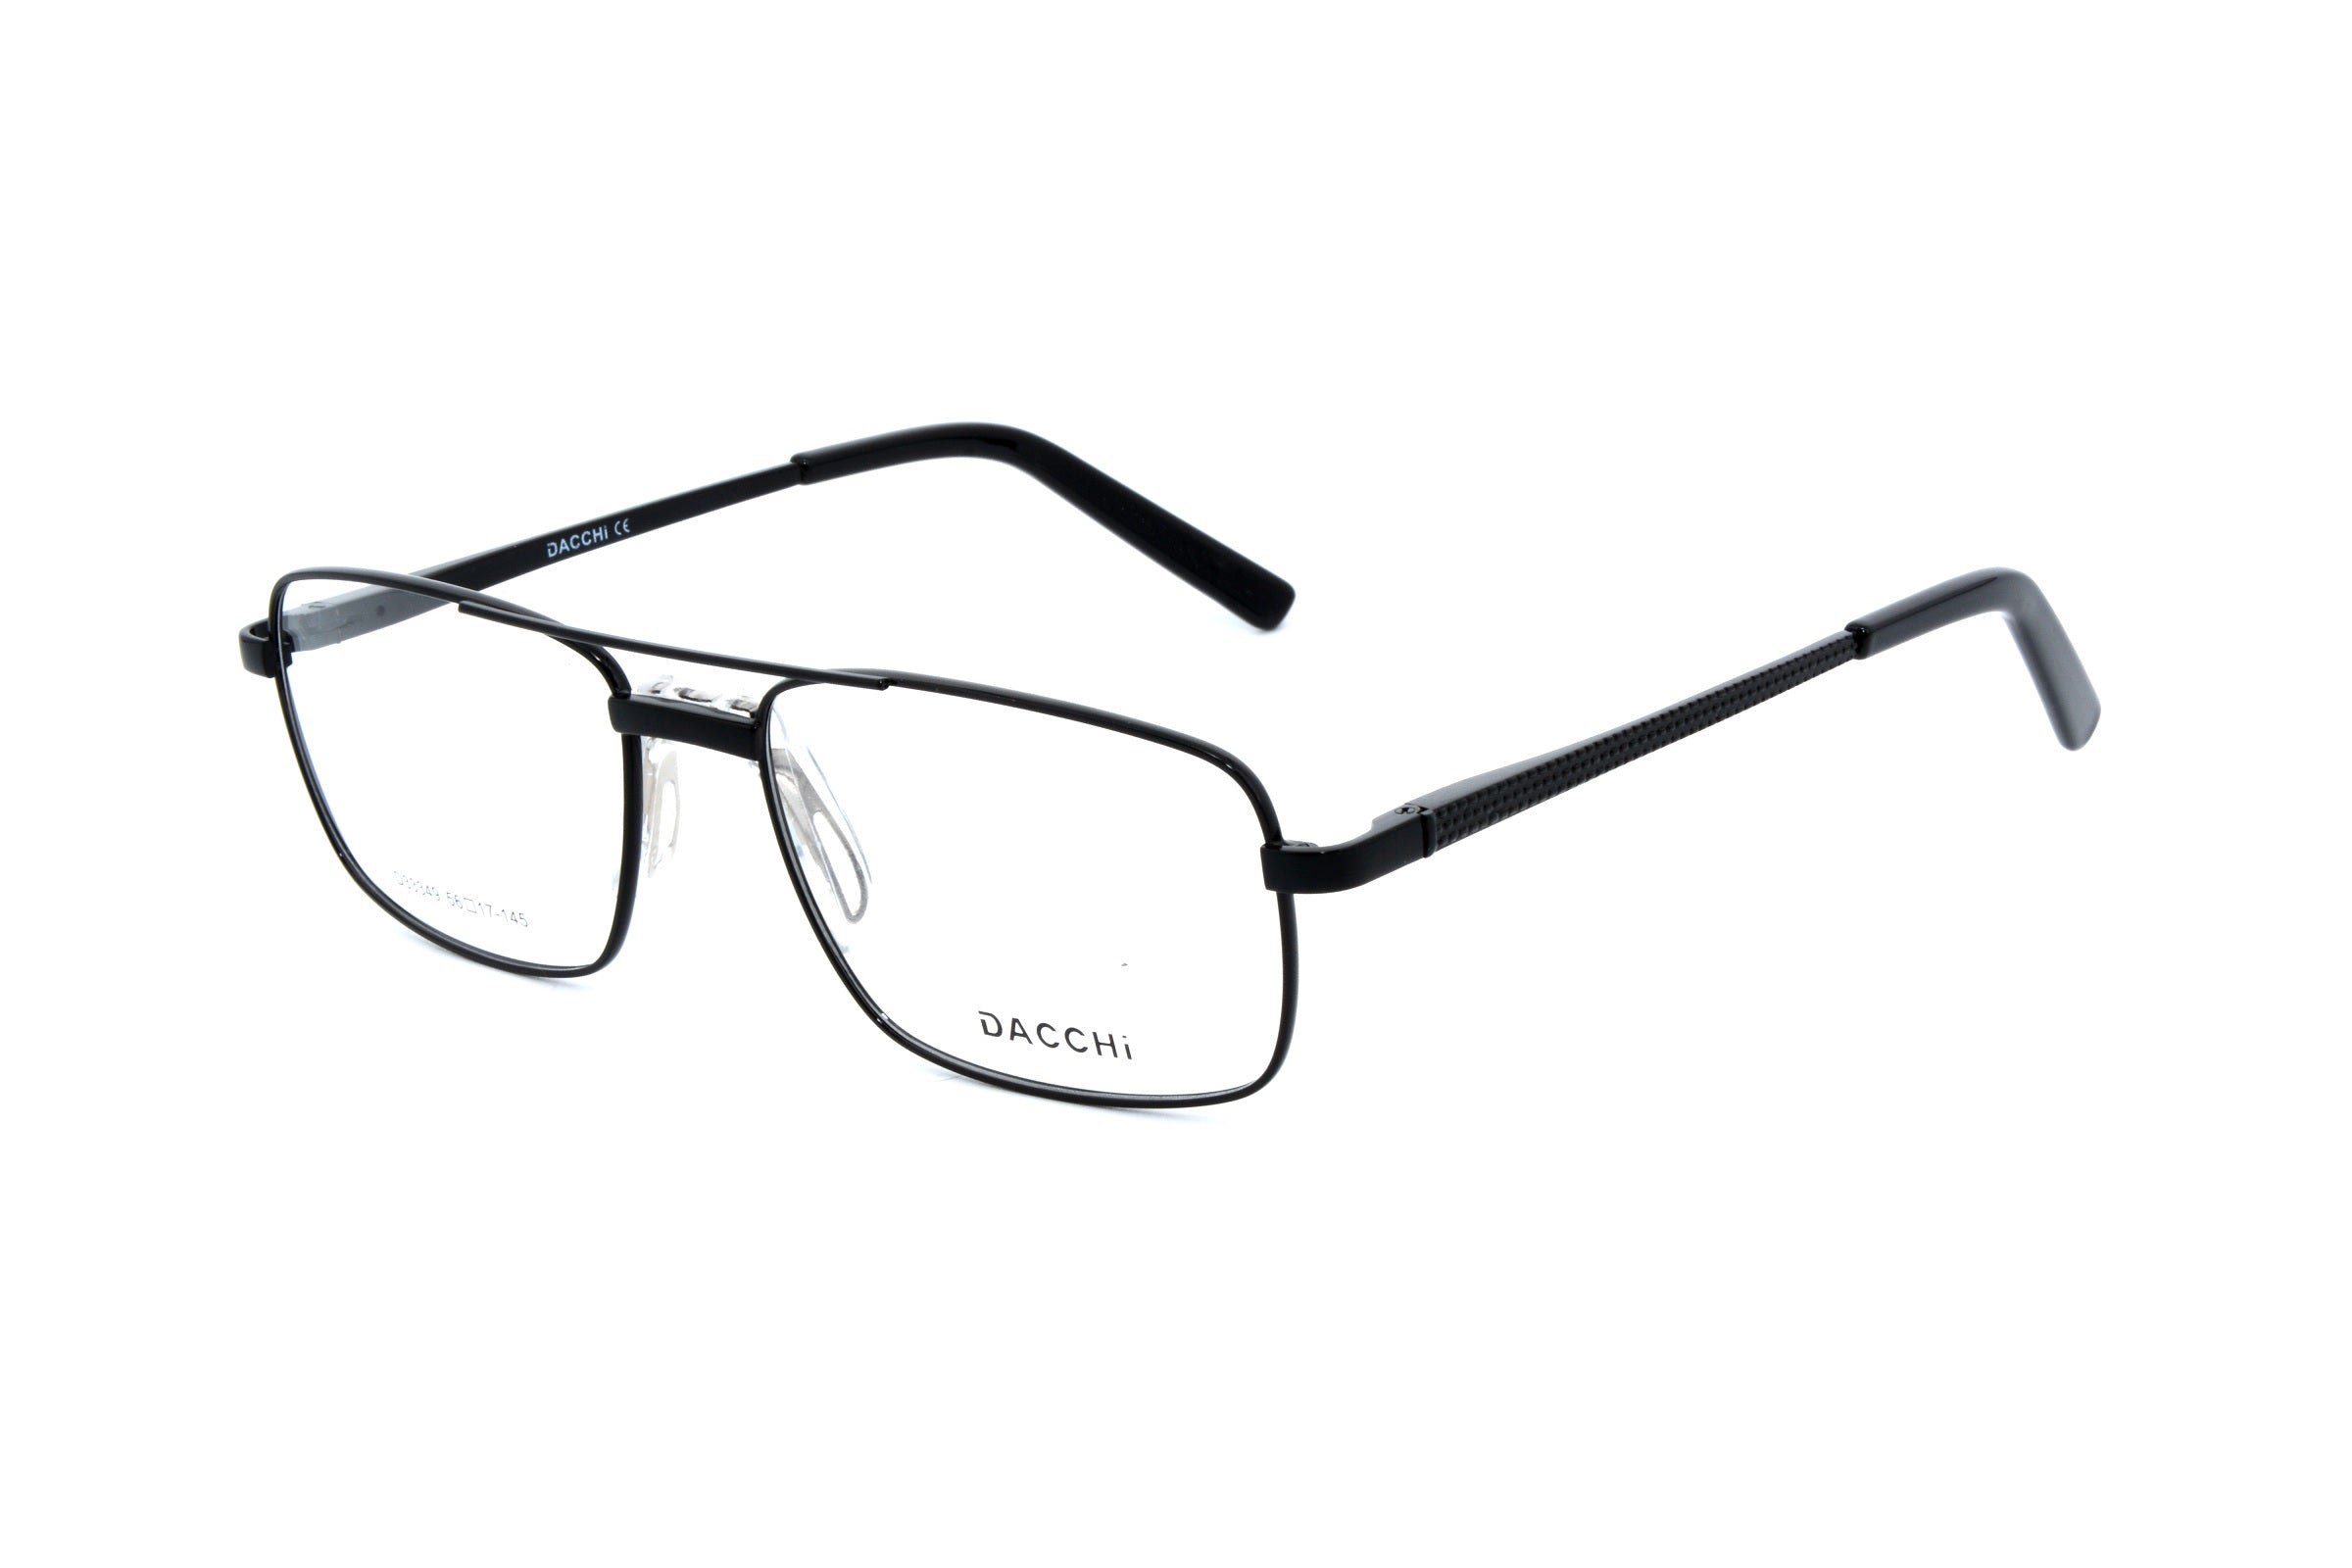 Dacchi eyewear 33349, C1 - Optics Trading